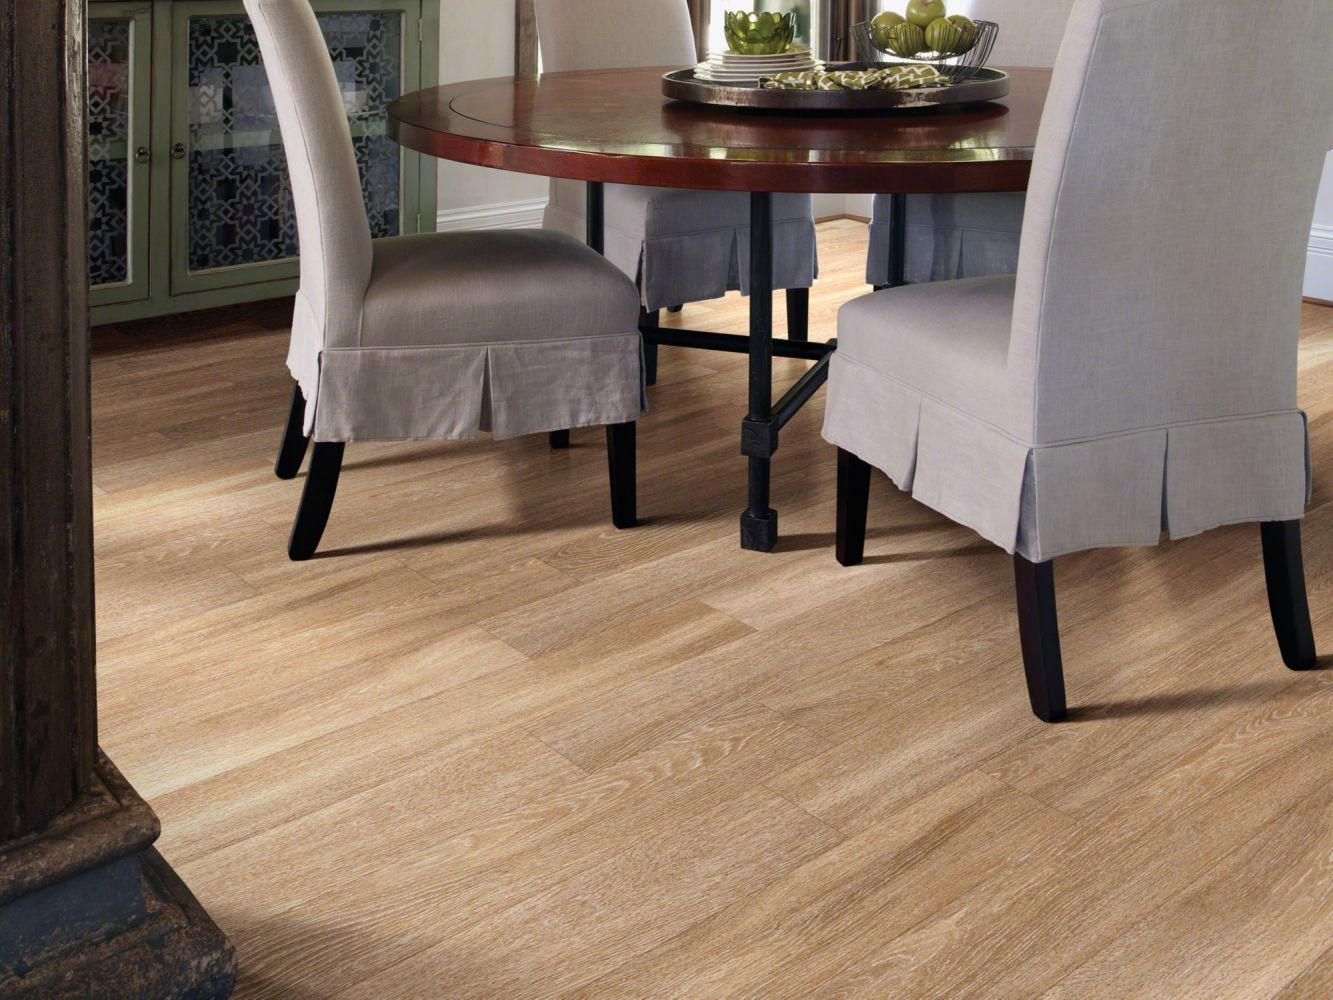 Shaw Floors Vinyl Residential World's Fair 12mil Brussels 00235_0319V